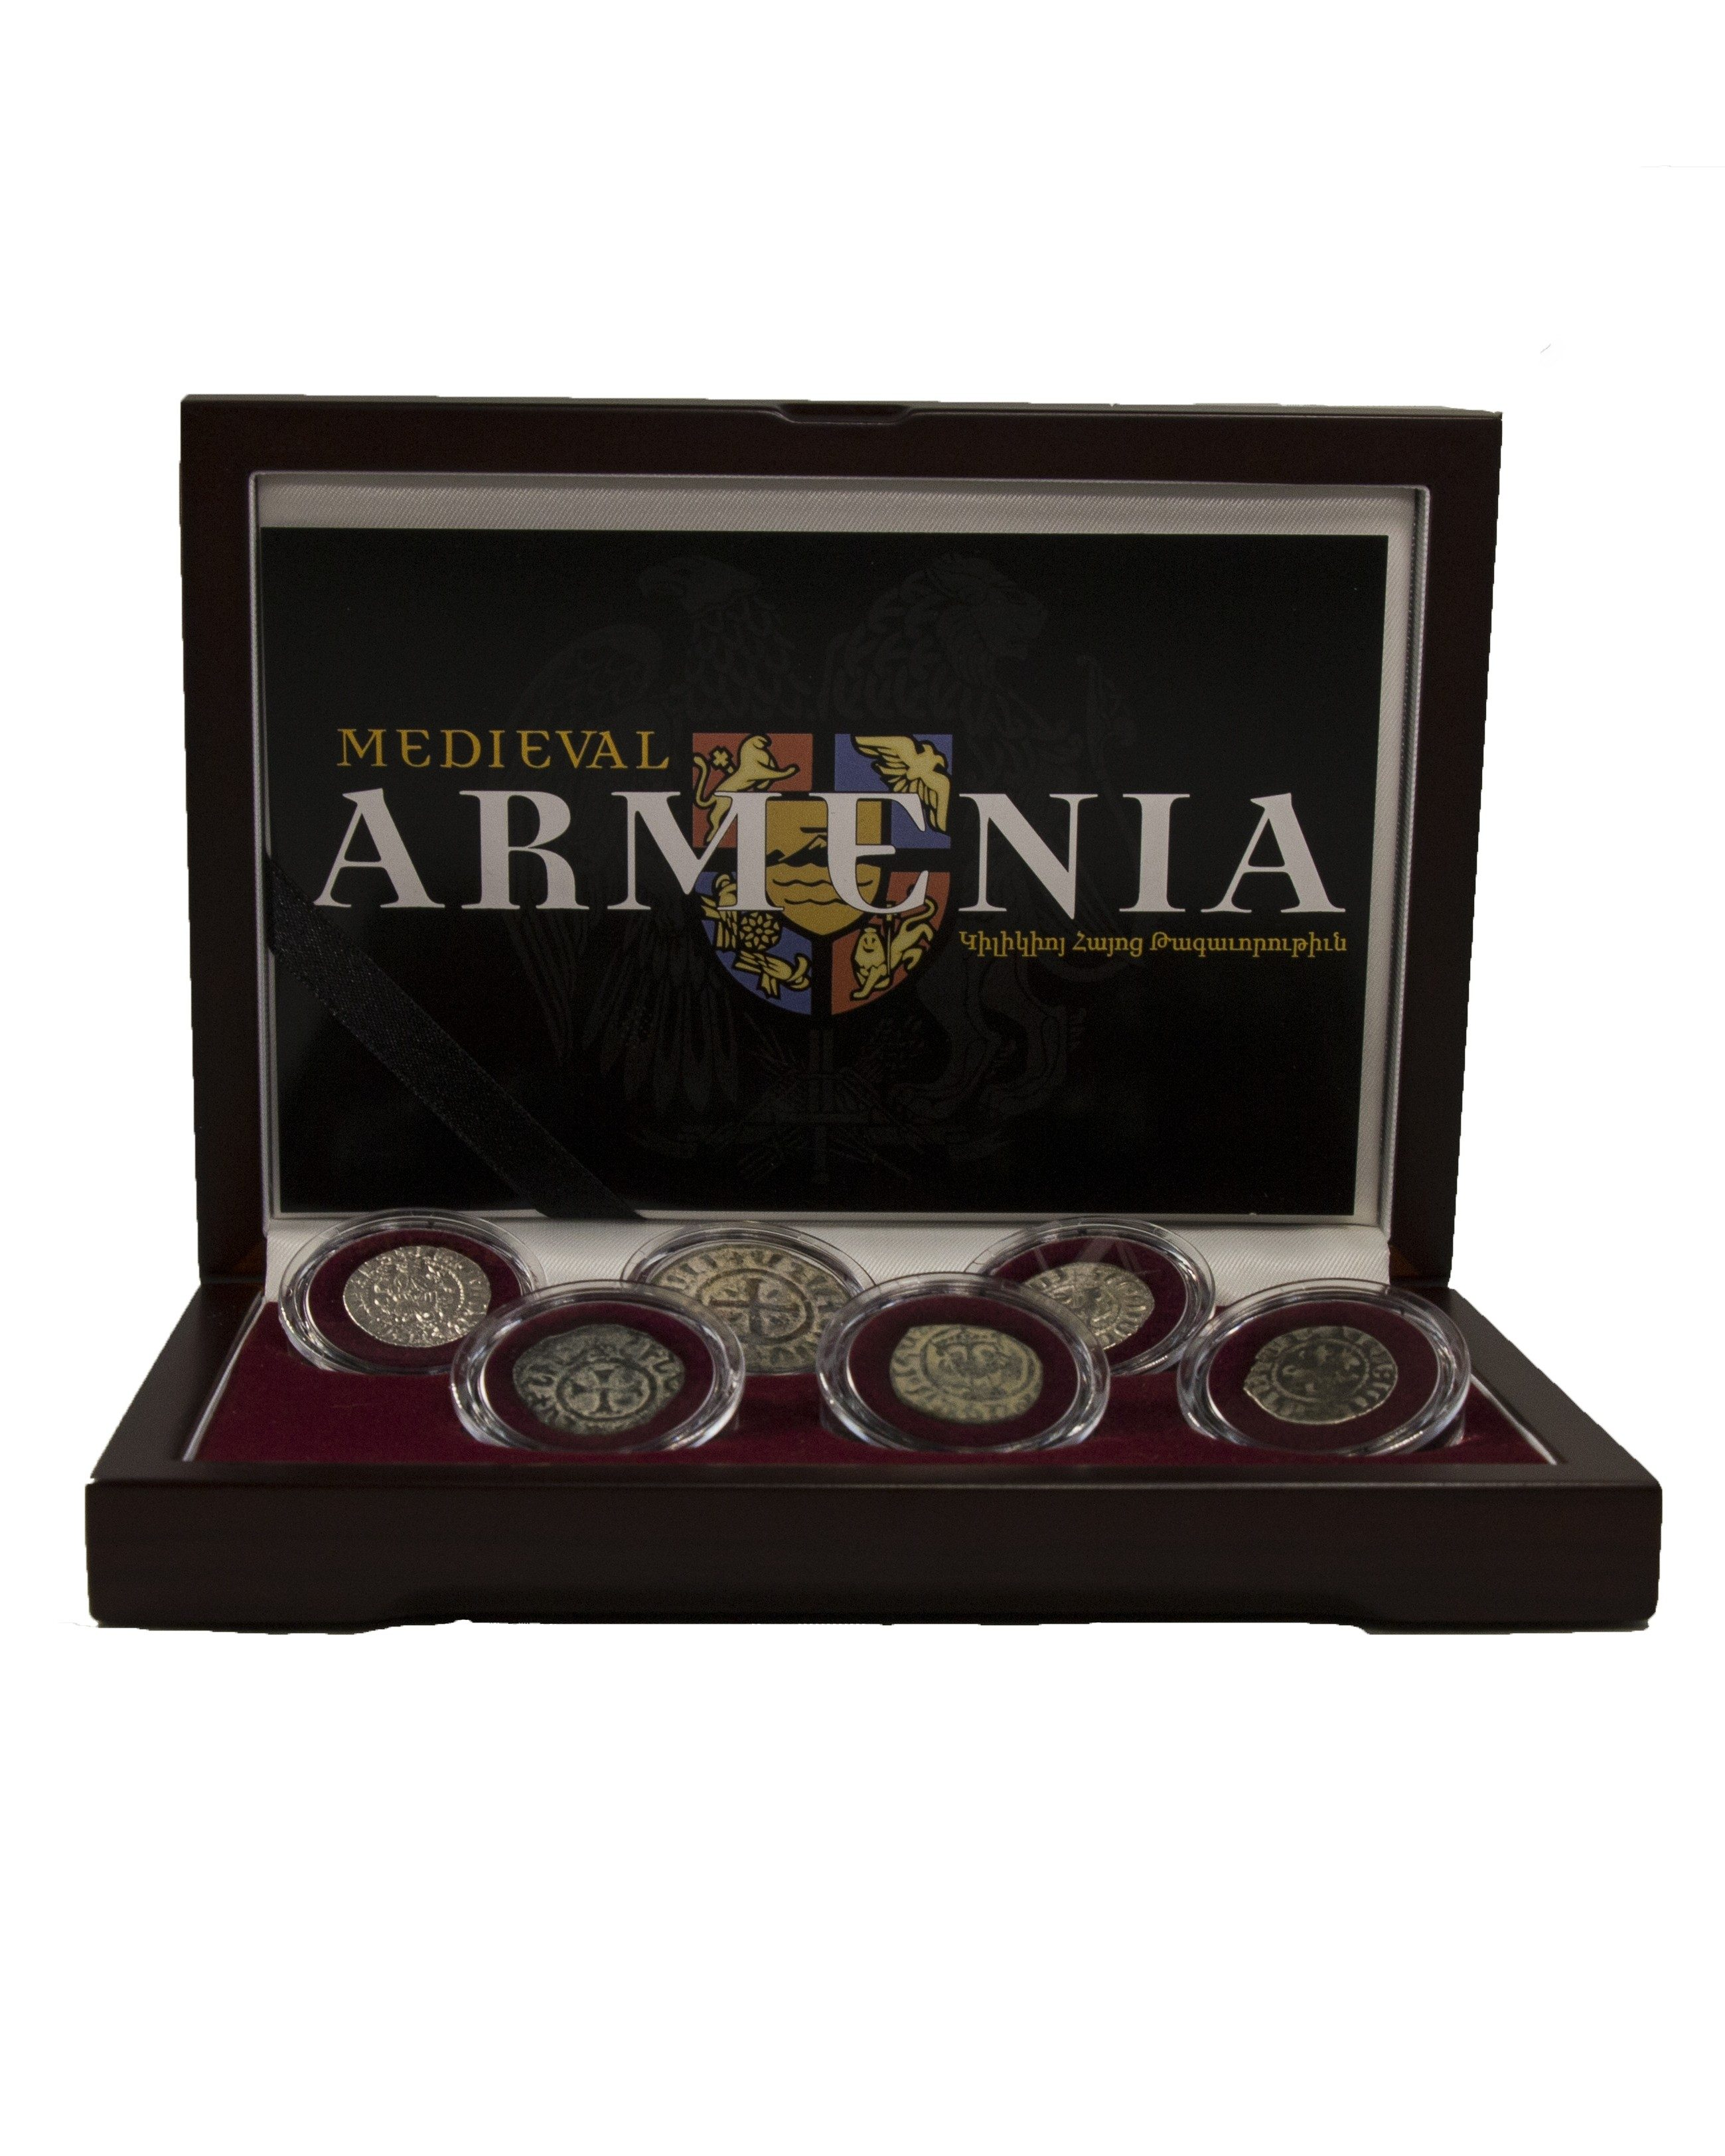 Medieval Armenia: A Six-Coin Collection